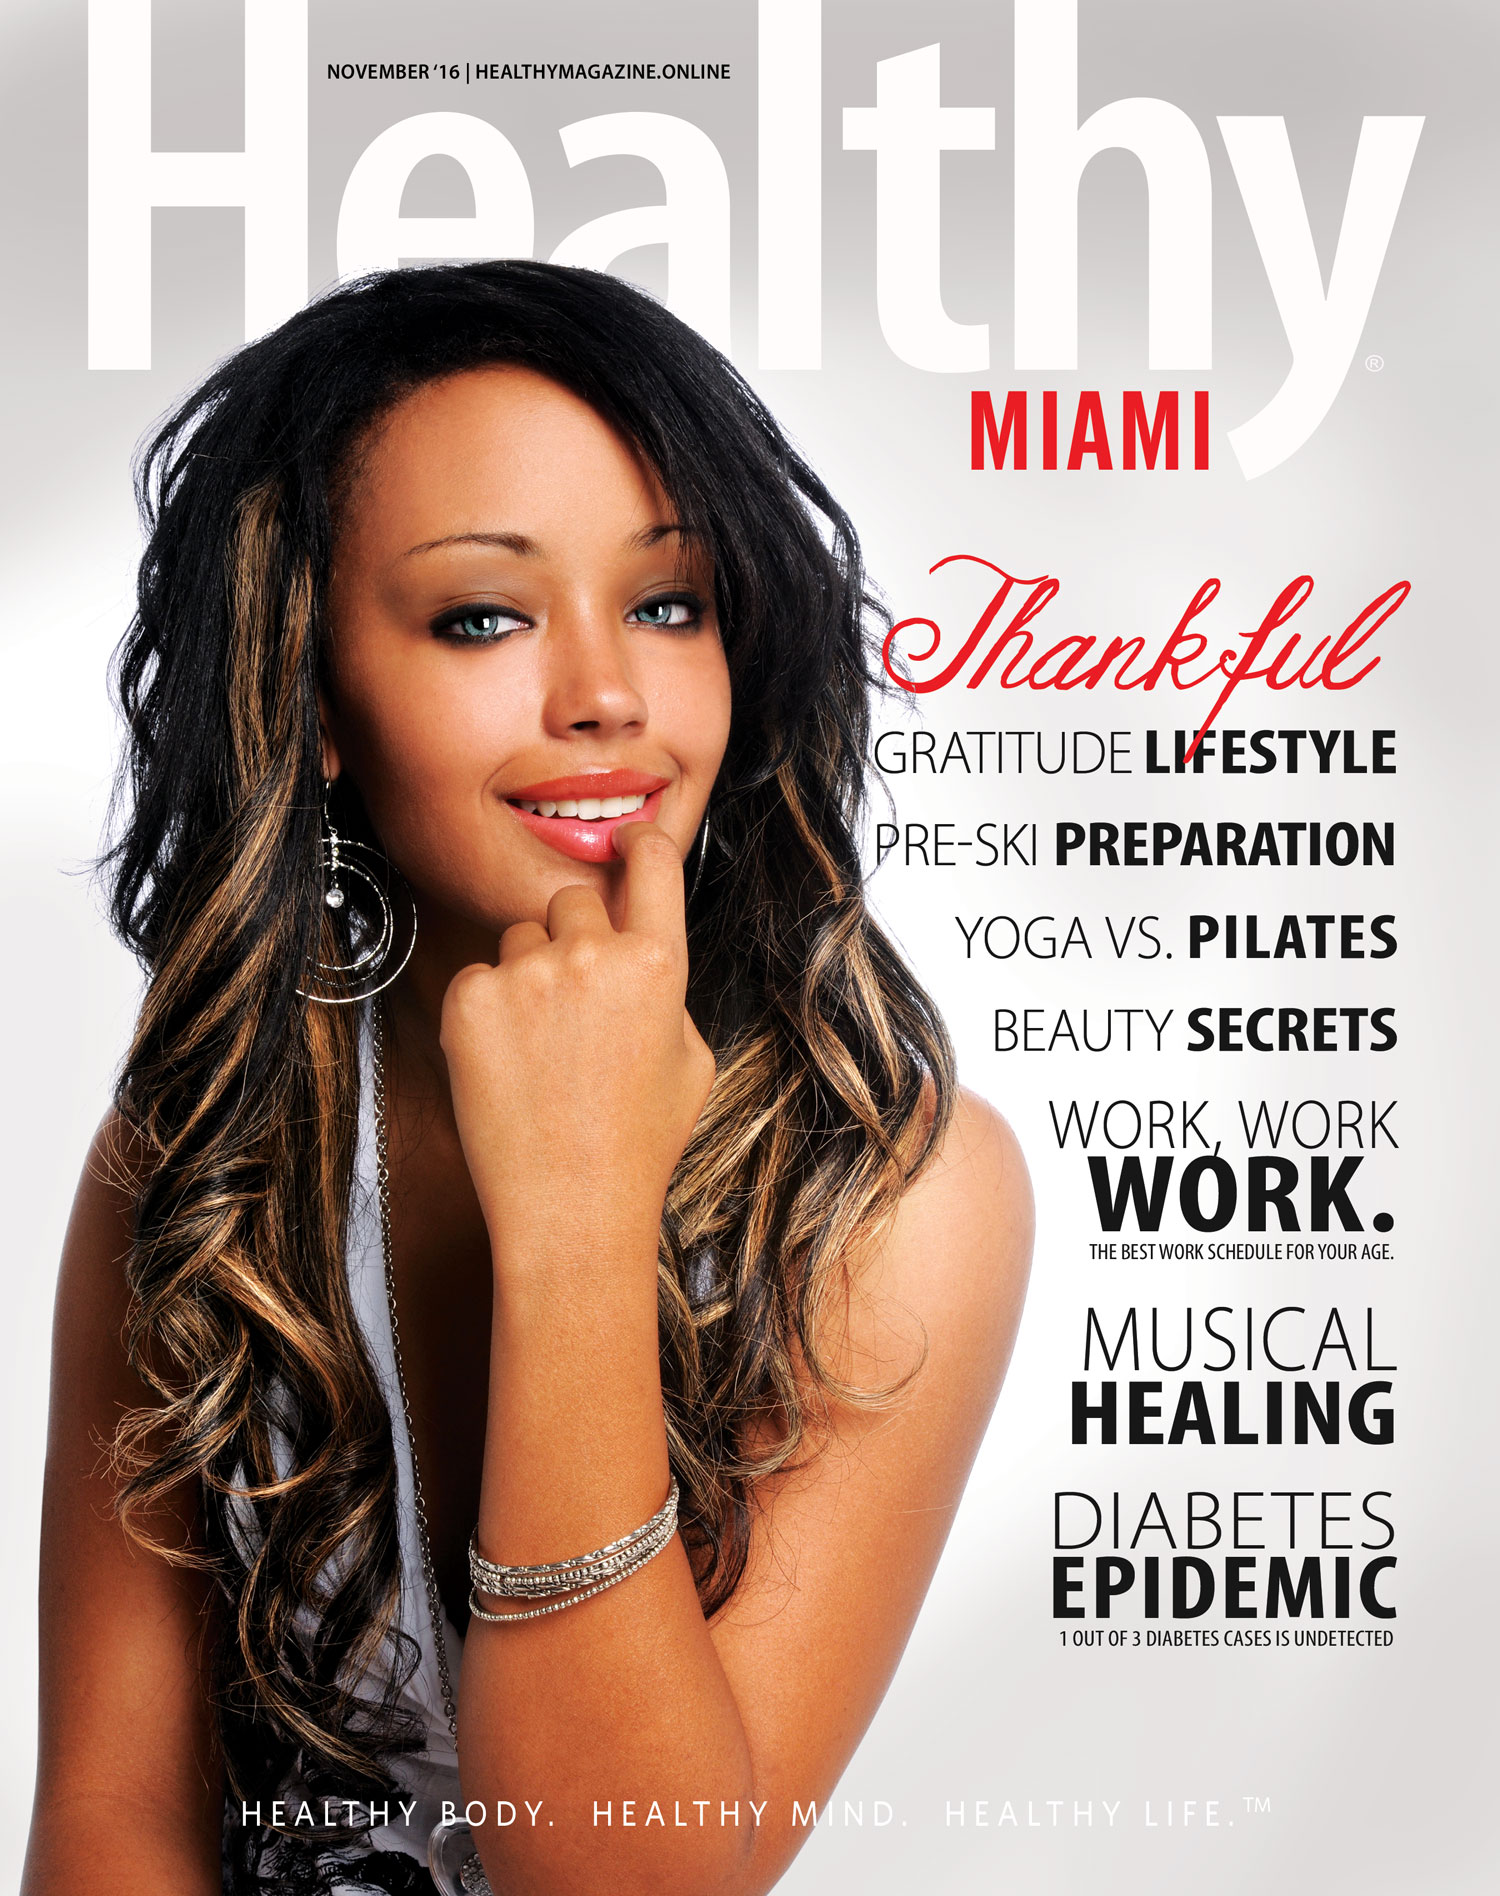 cover-healthy-miami-1611